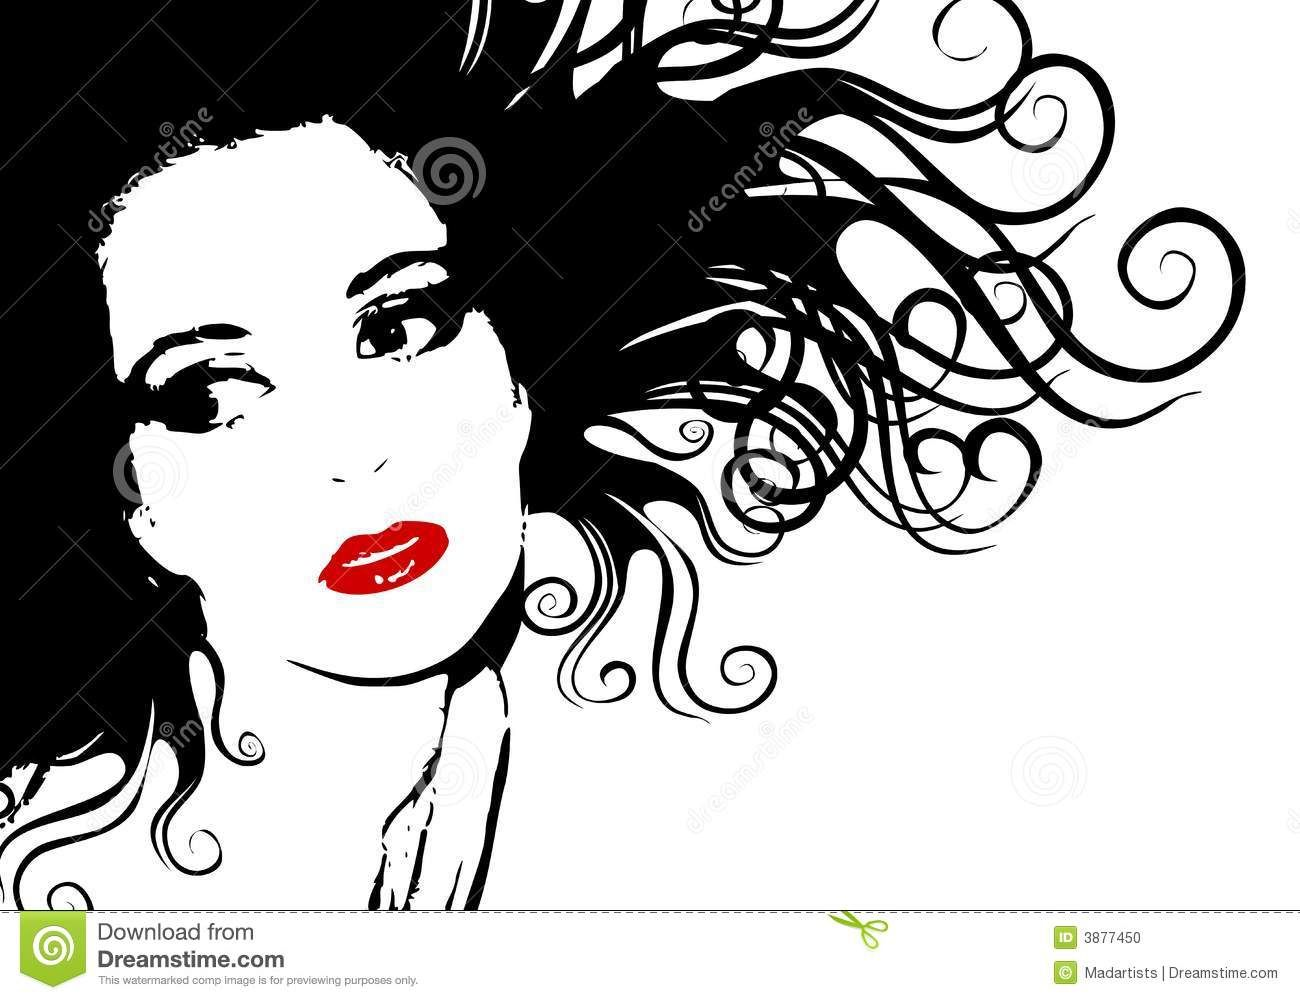 Black and White Female Face Silhouette Outline Great art